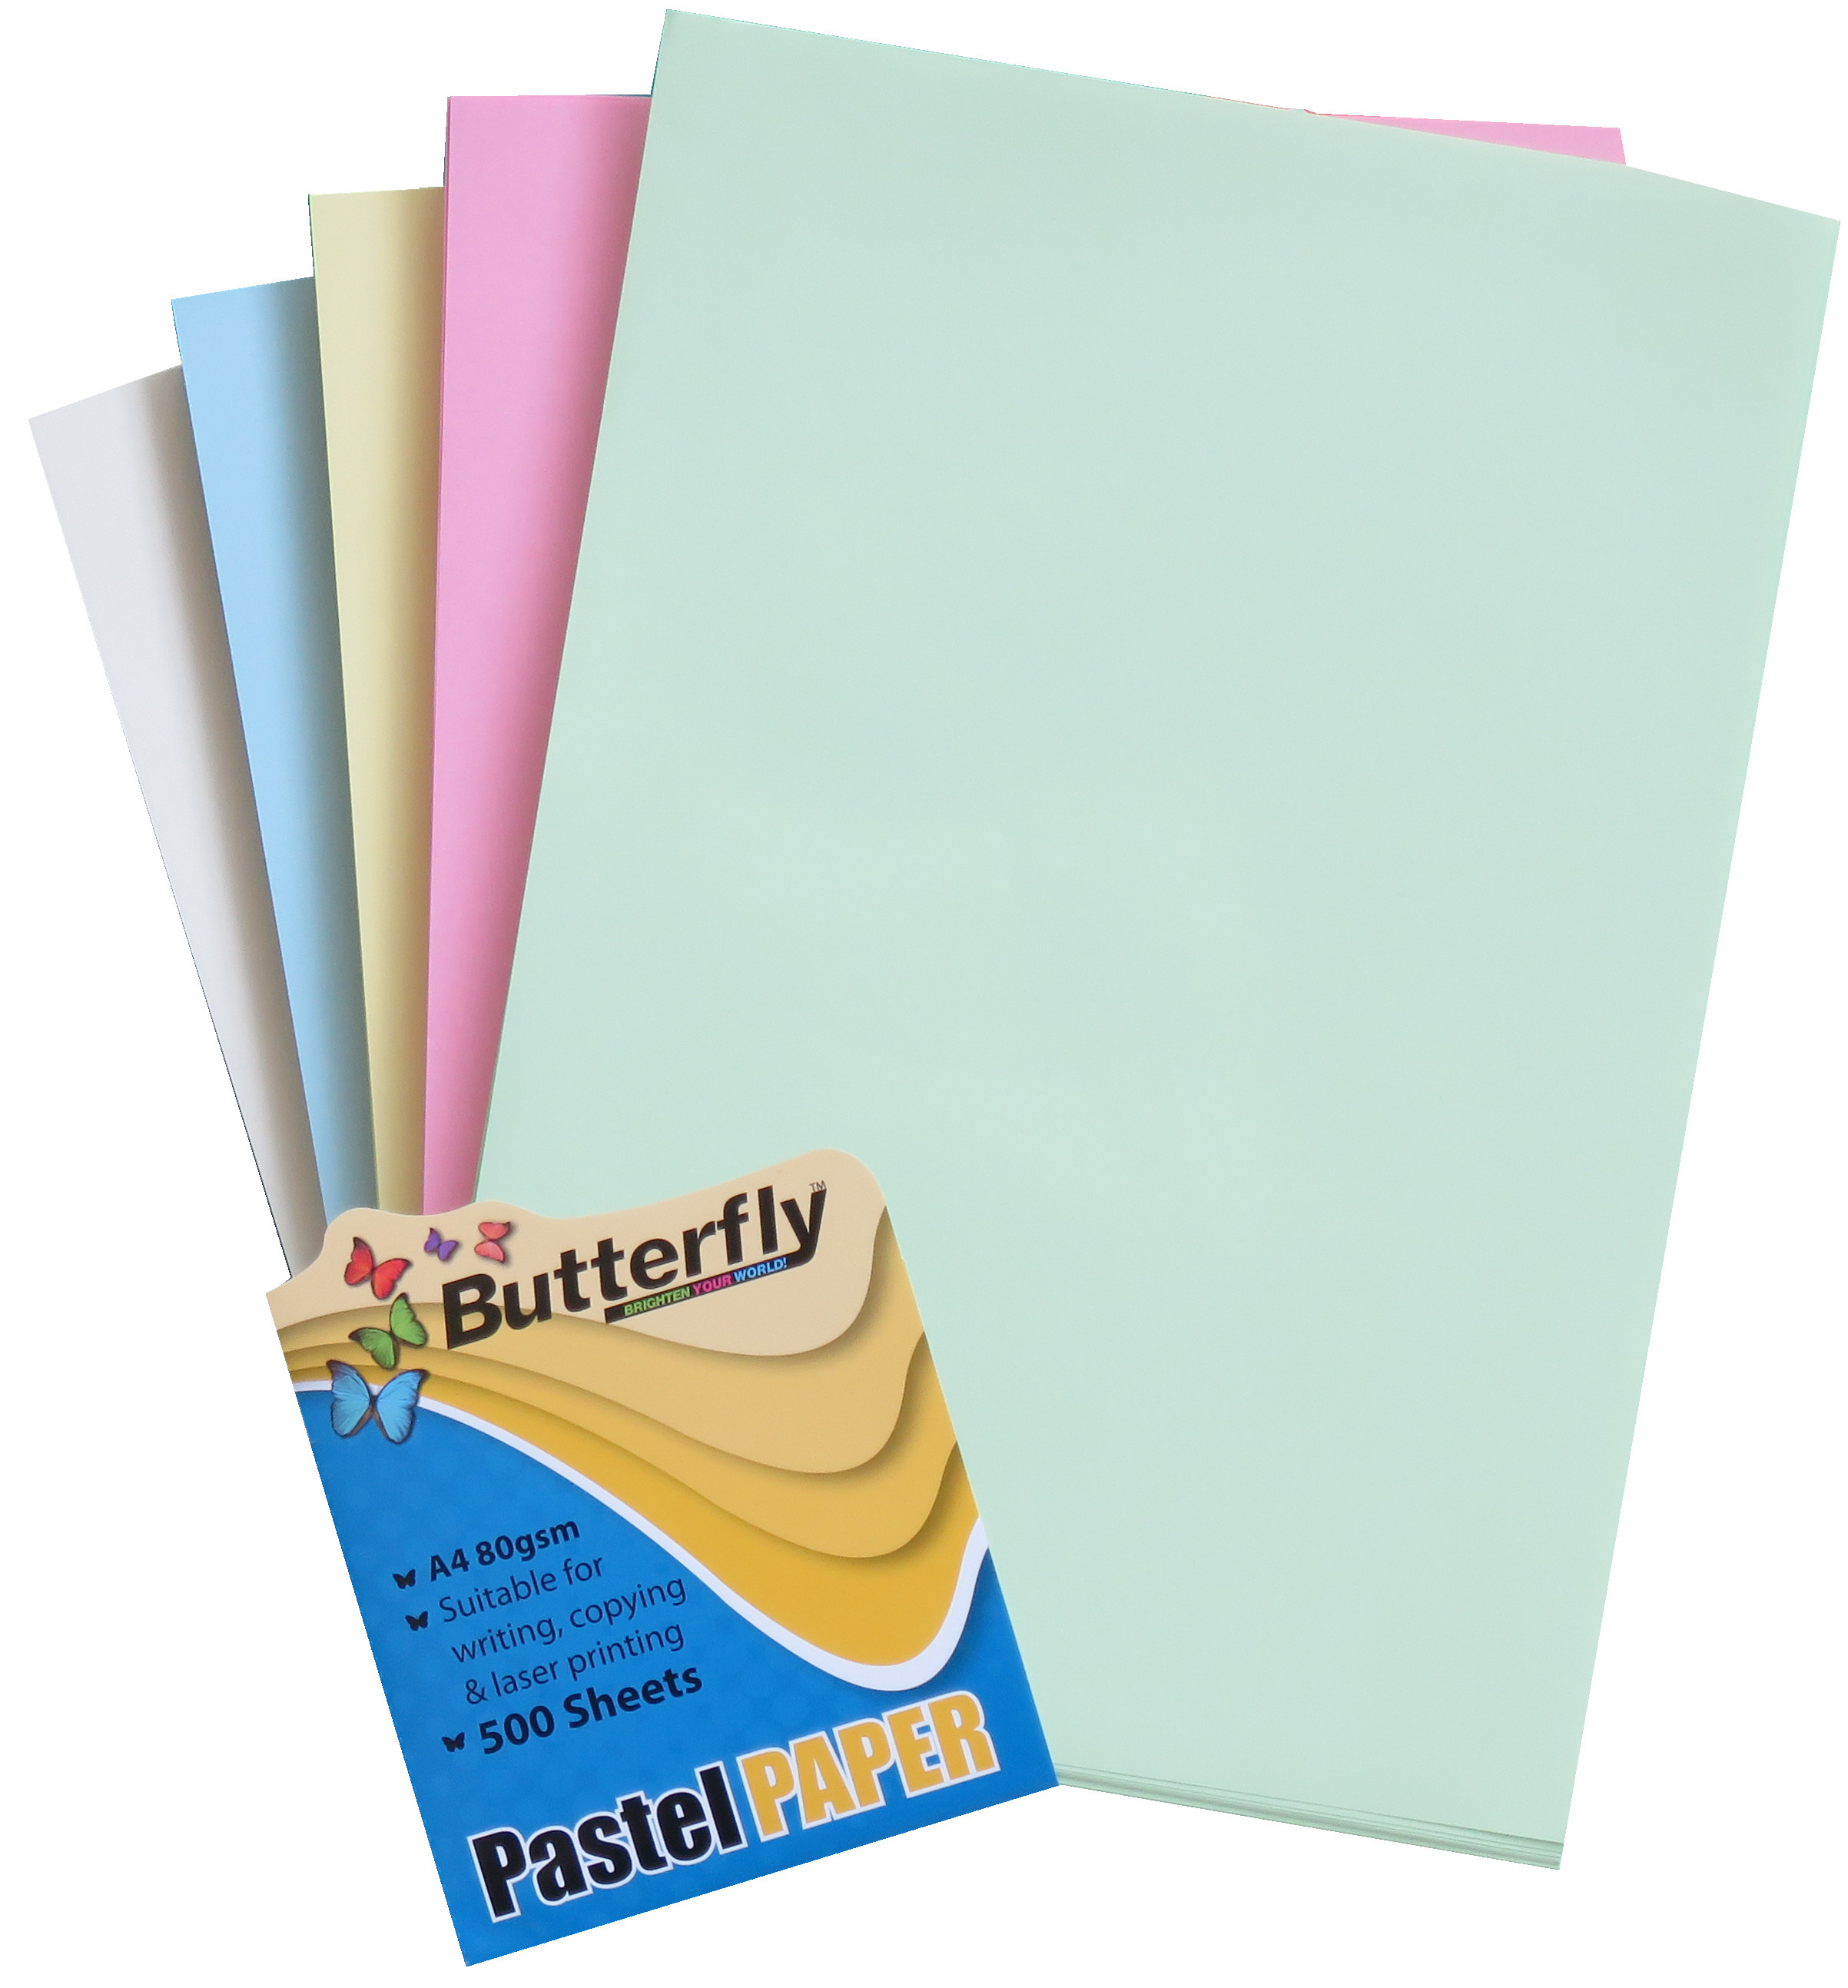 Mixed A4 Pastel Paper - Pack of 500 (100 of Each Colour)